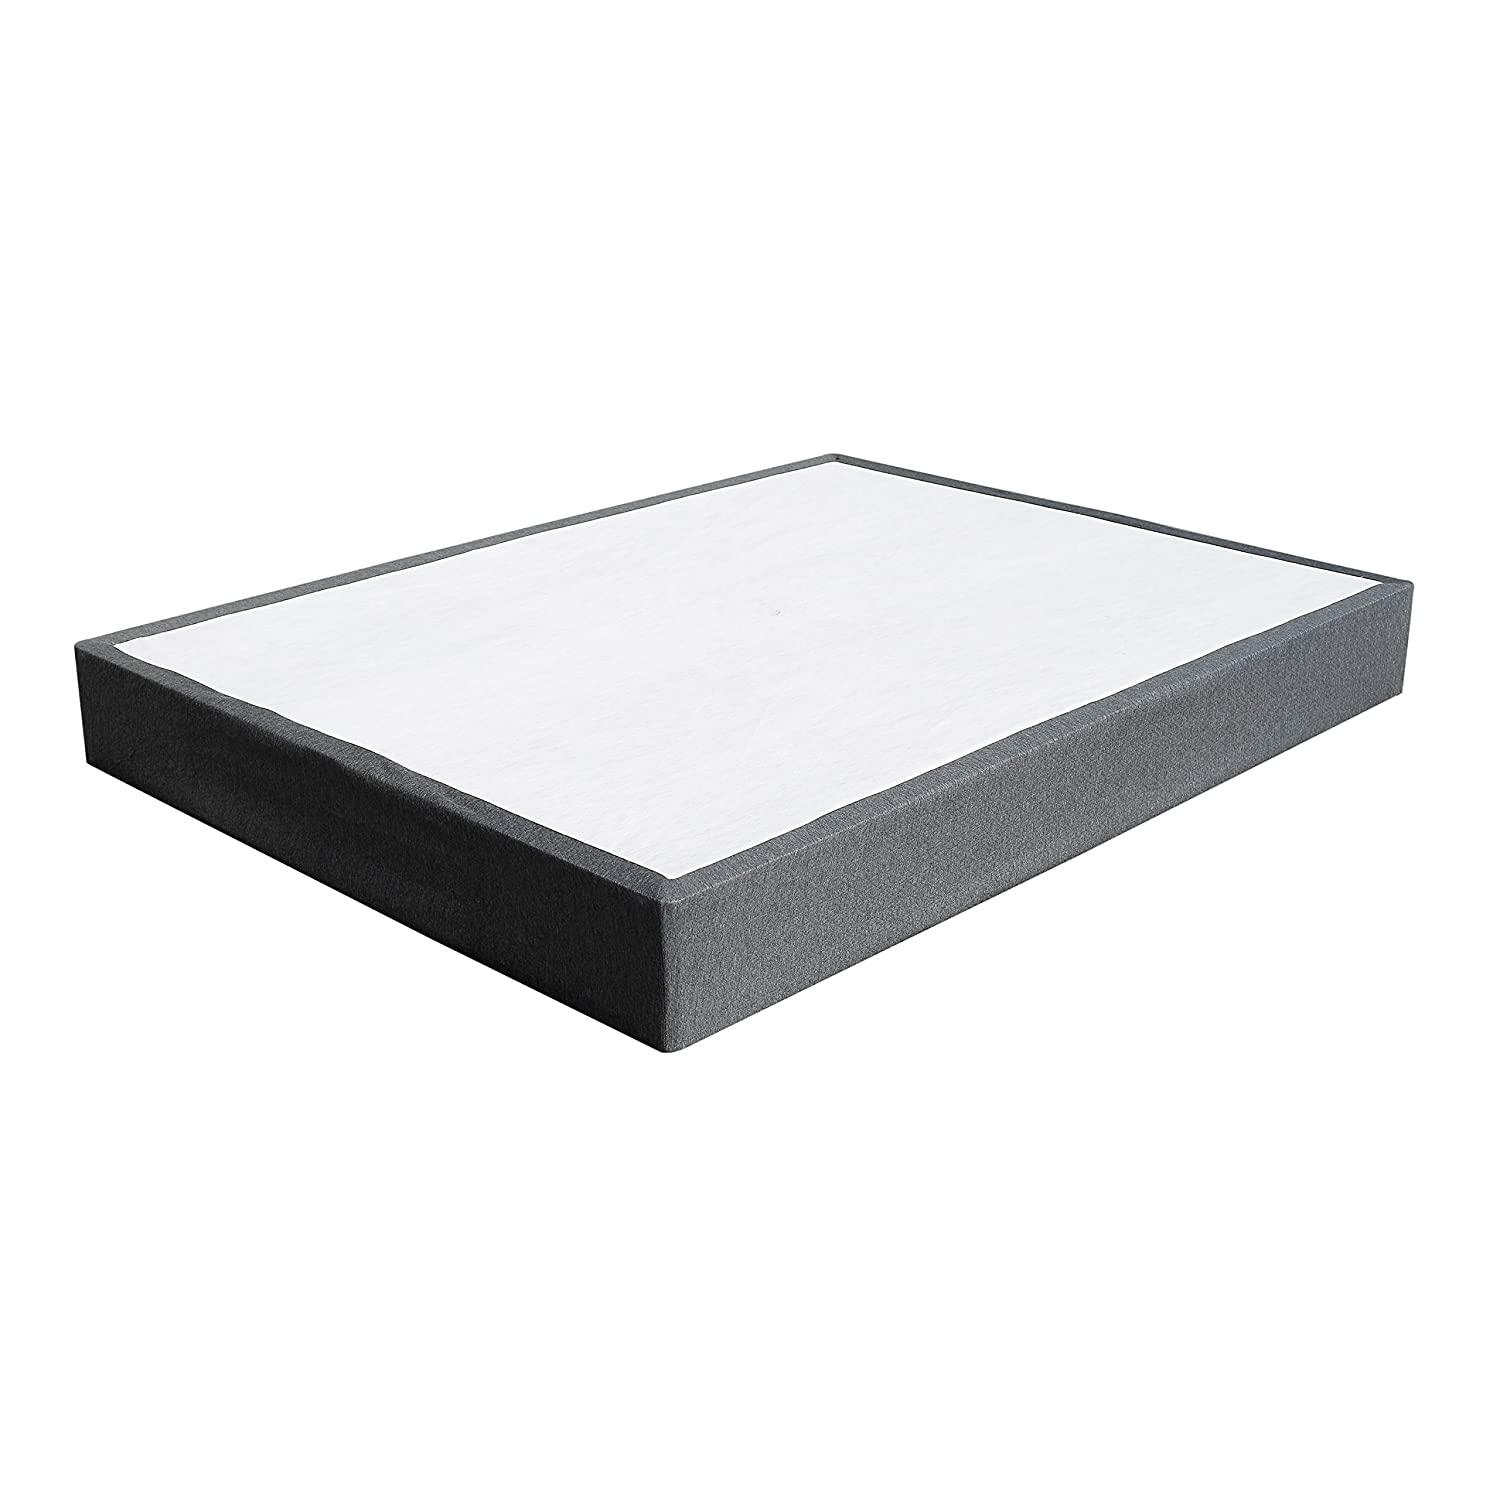 TATAGO 3000lbs Max Weight Capacity 9 Inch Heavy Duty Metal Box Spring Mattress Foundation, Extra-Strong Support Non-Slip, No Noise, Easy Assembly Queen